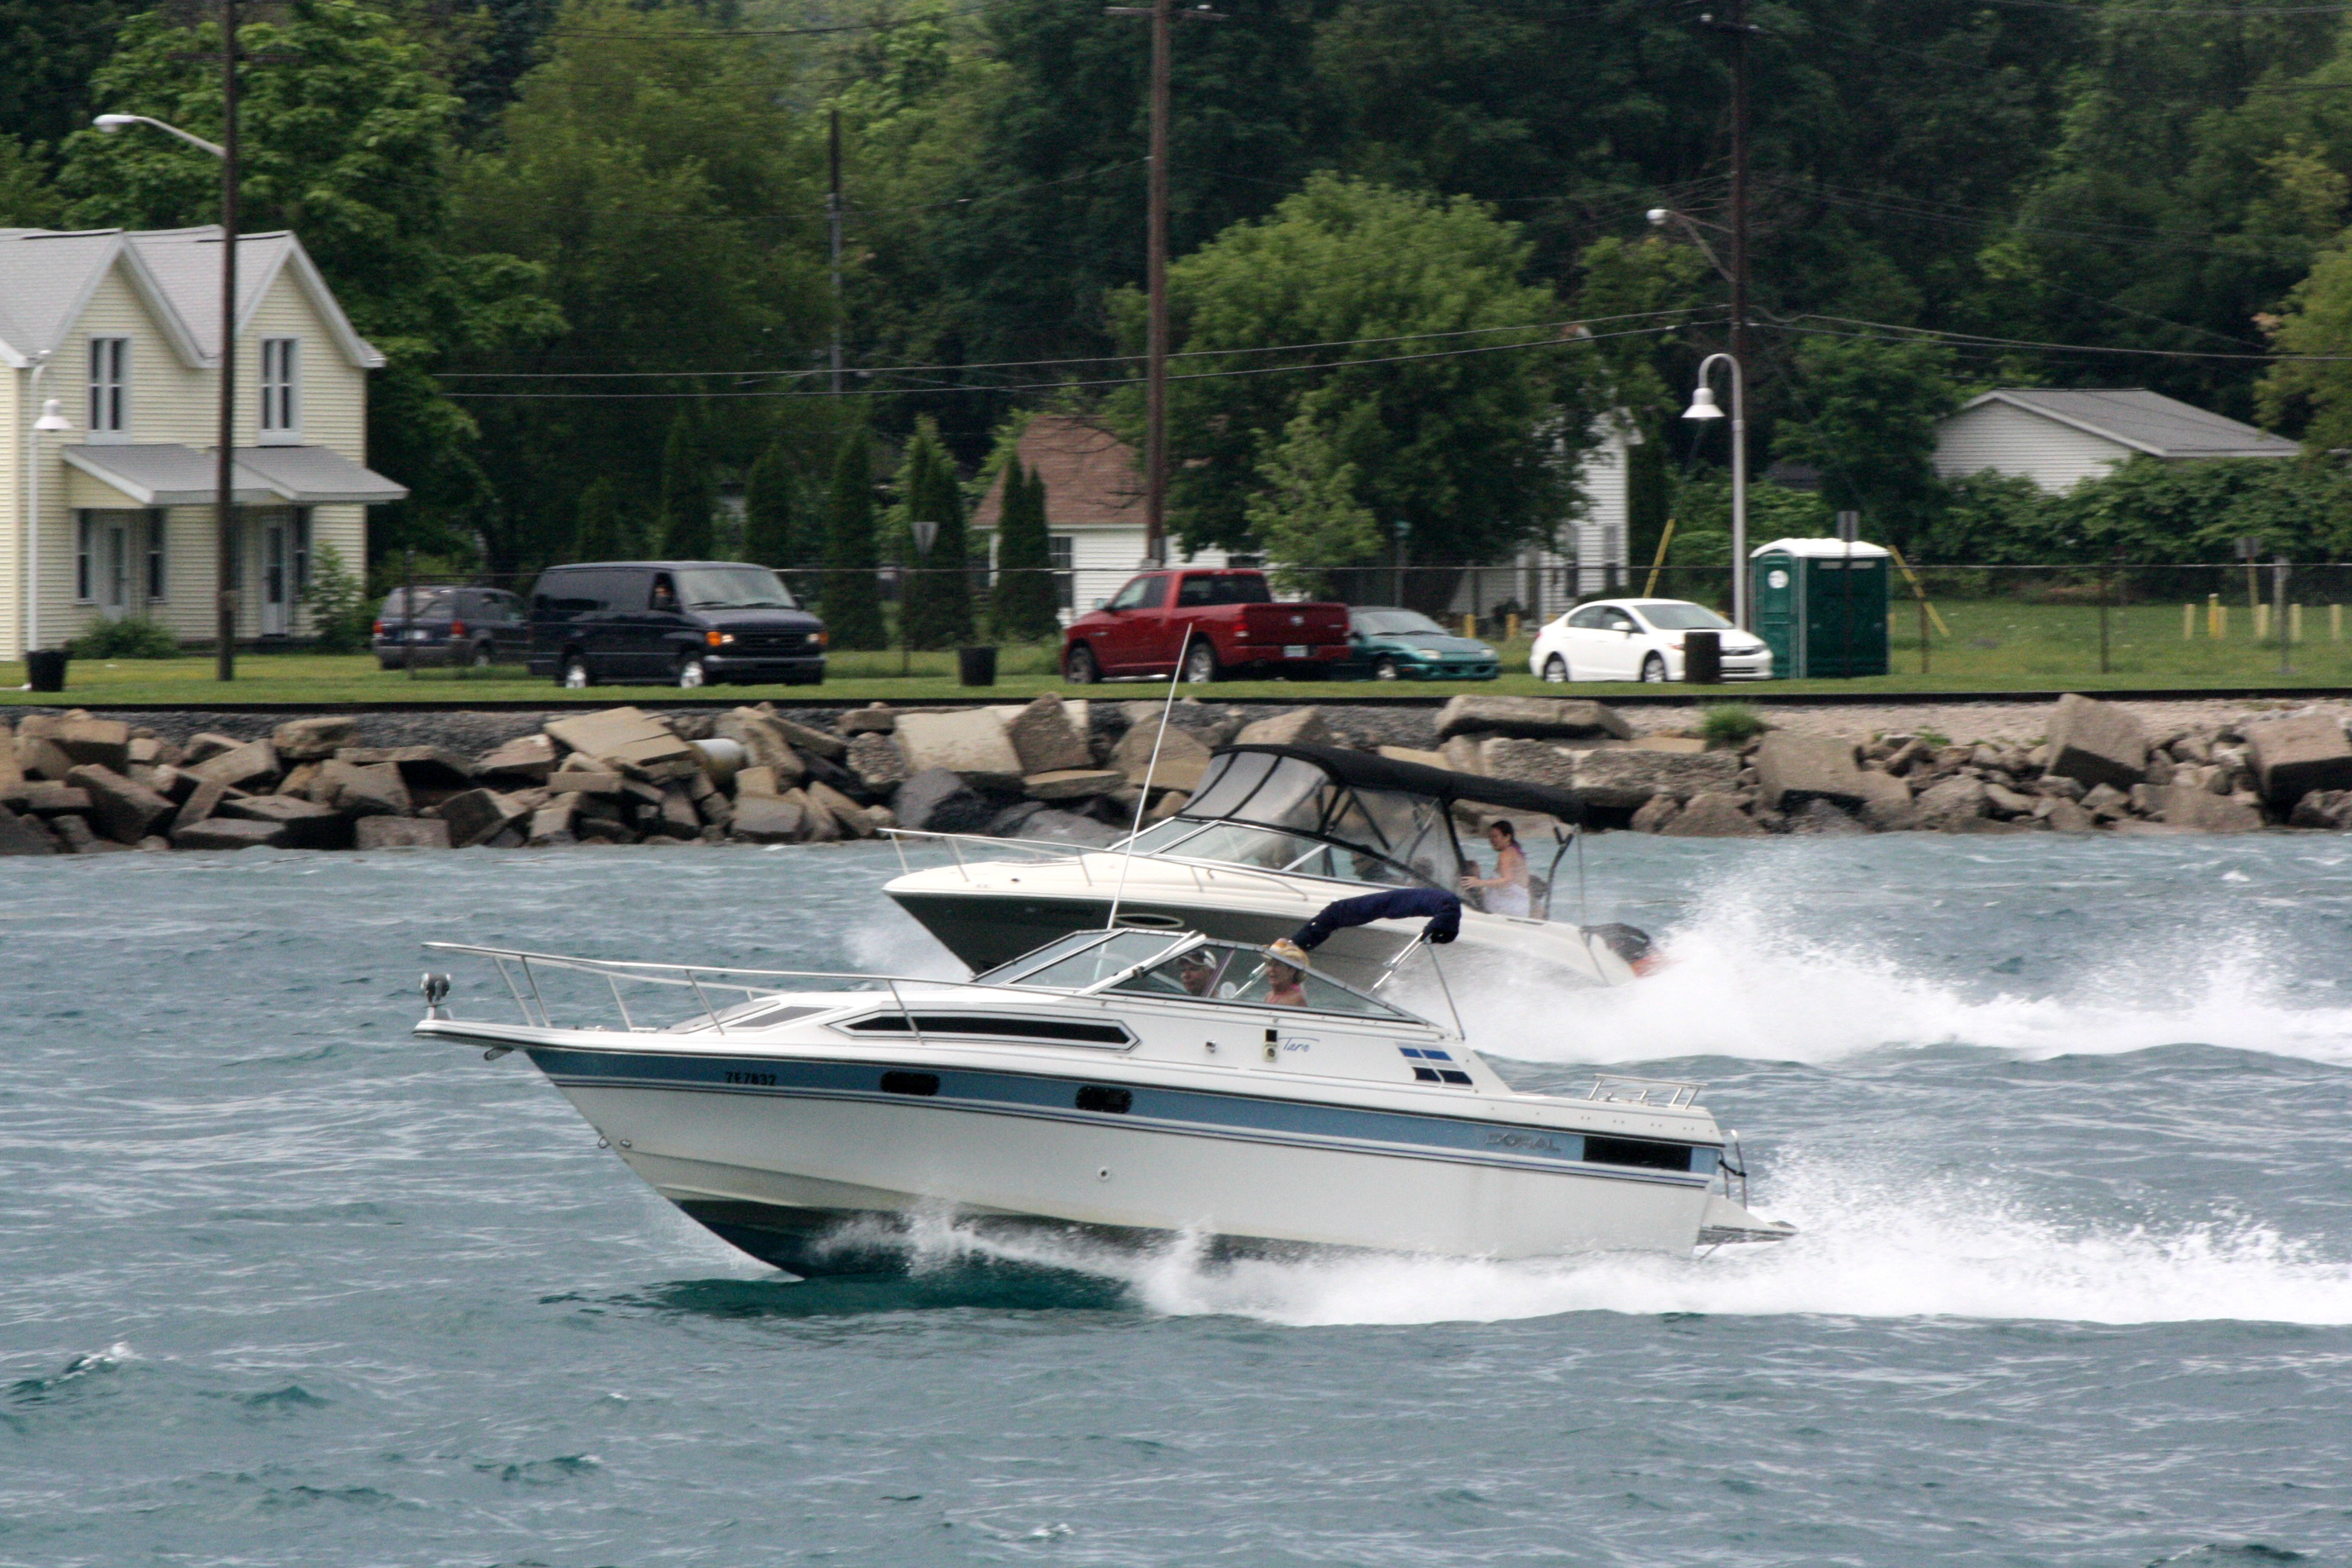 Boats on the St. Clair River (BlackburnNews.com photo by Dave Dentinger)